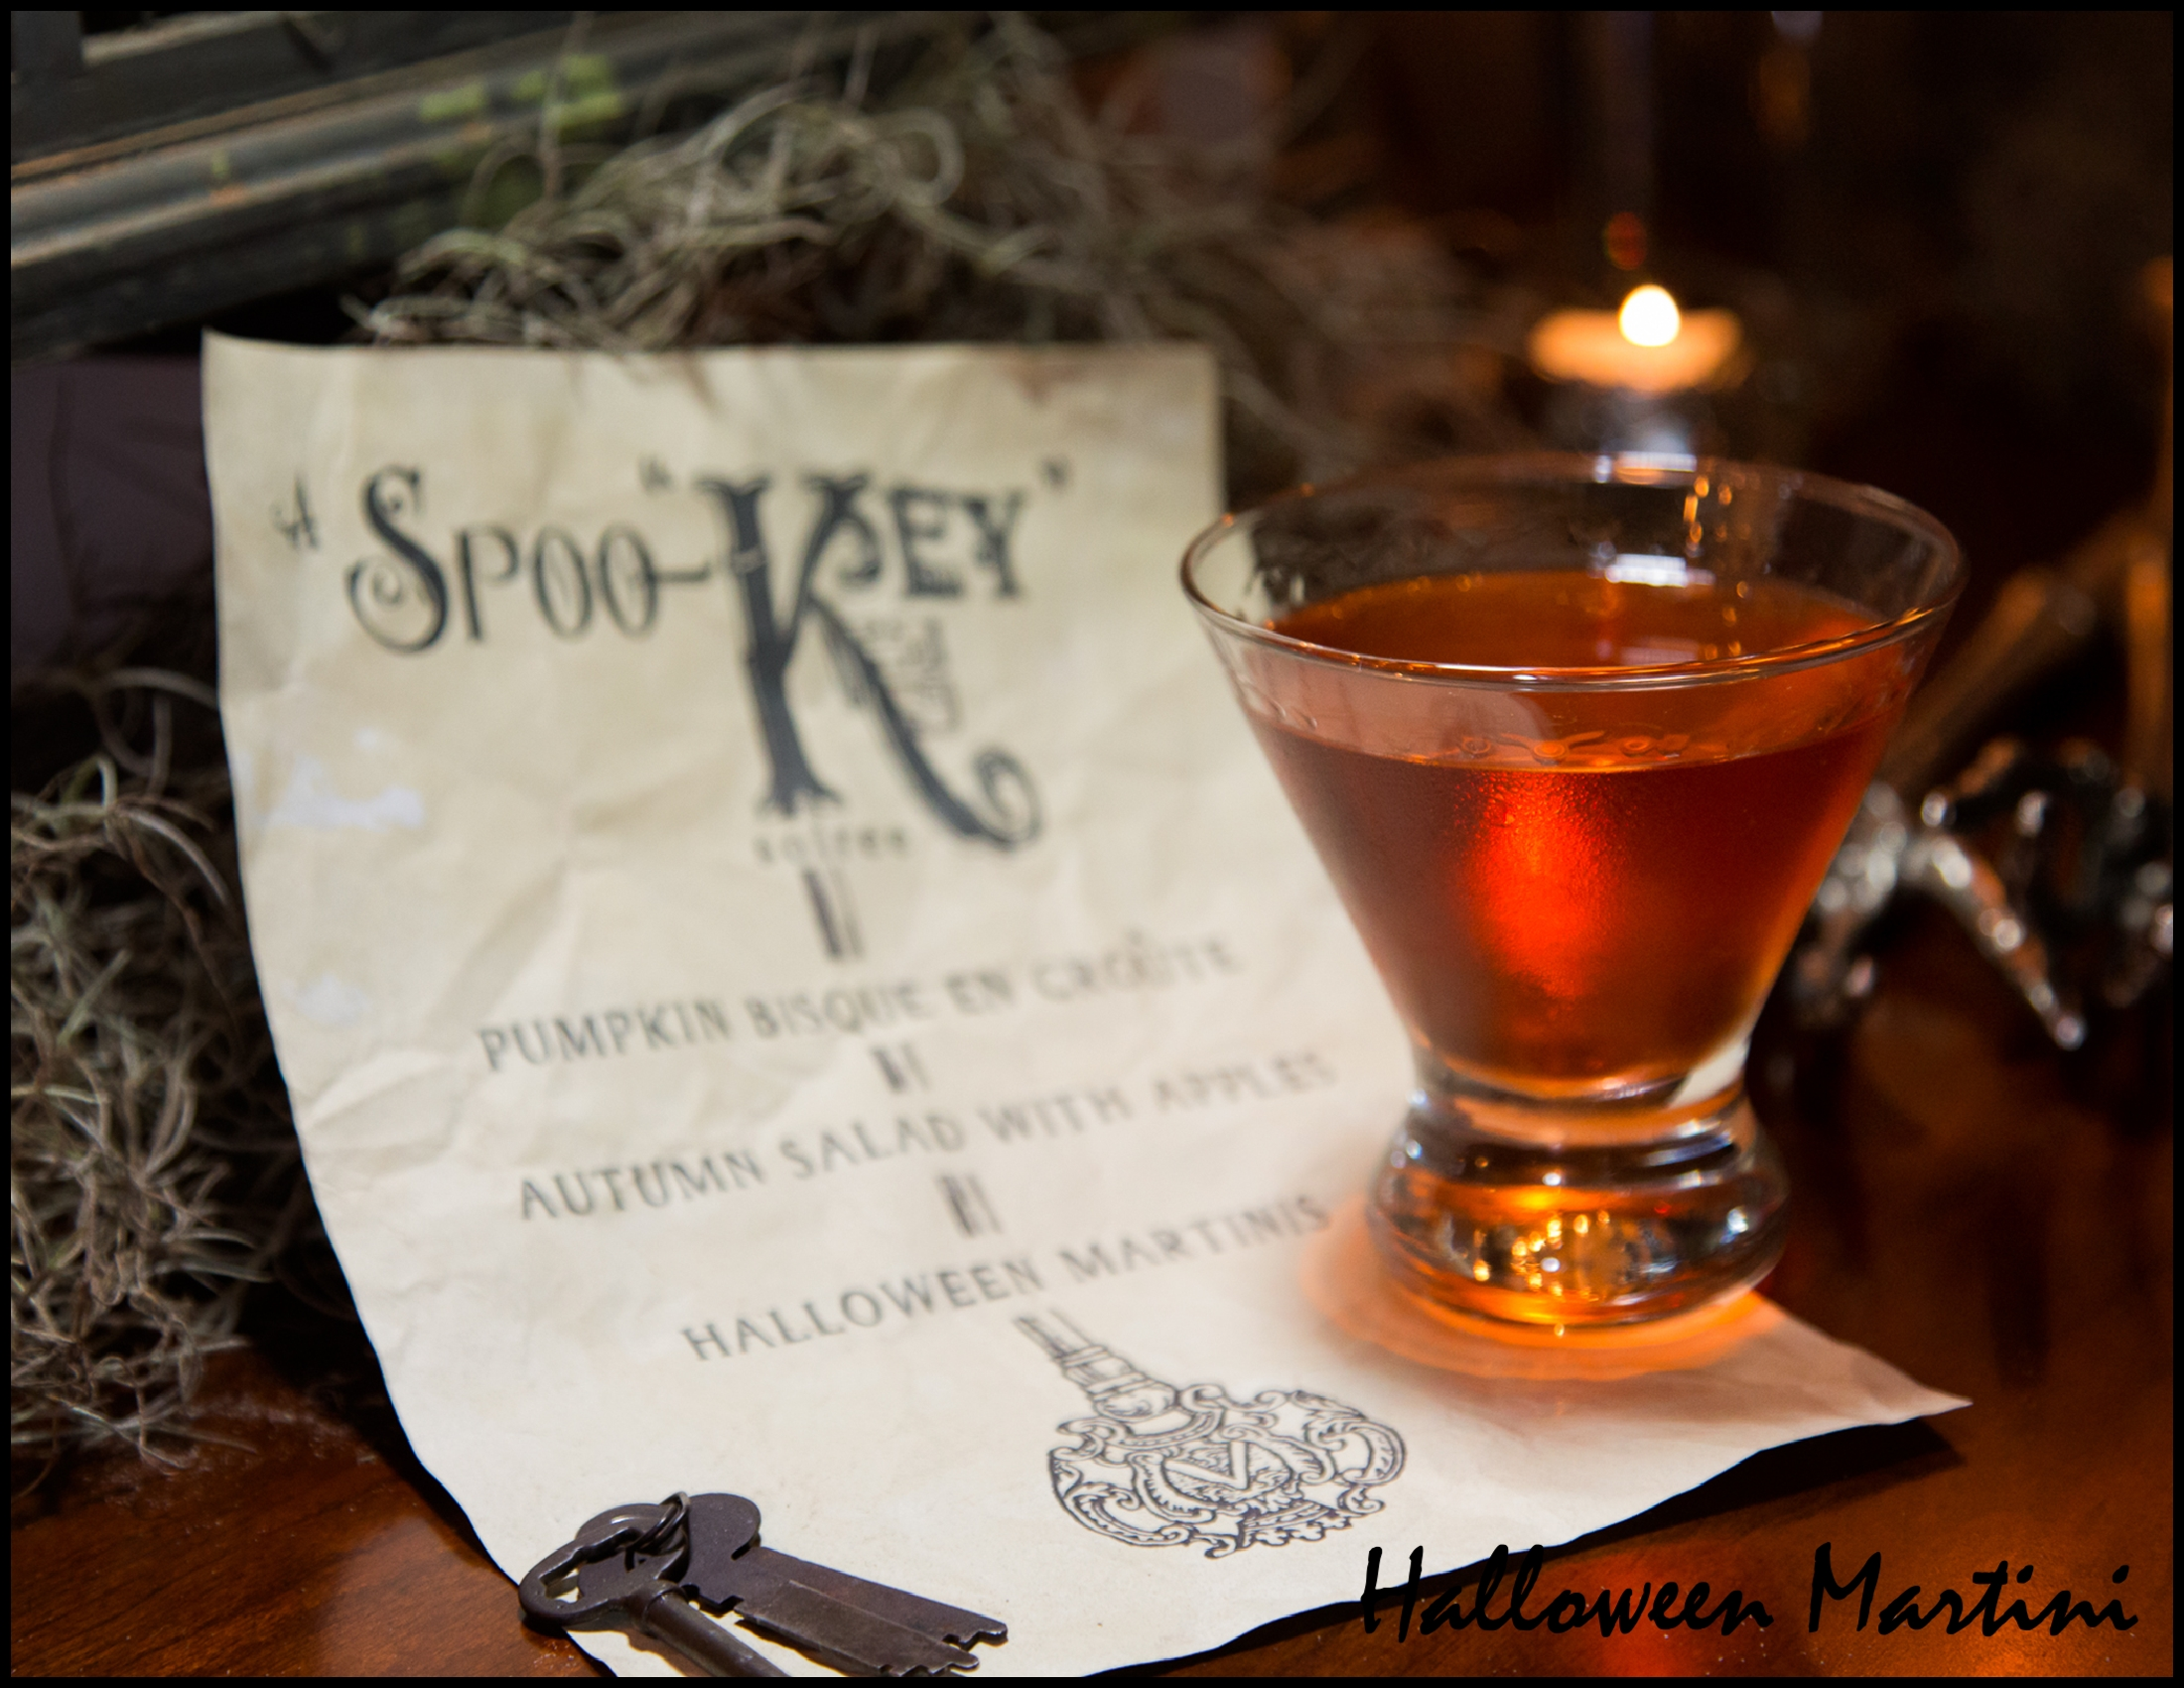 """Halloween Martini (from the cookbook """"Celebrate Everything!"""")"""